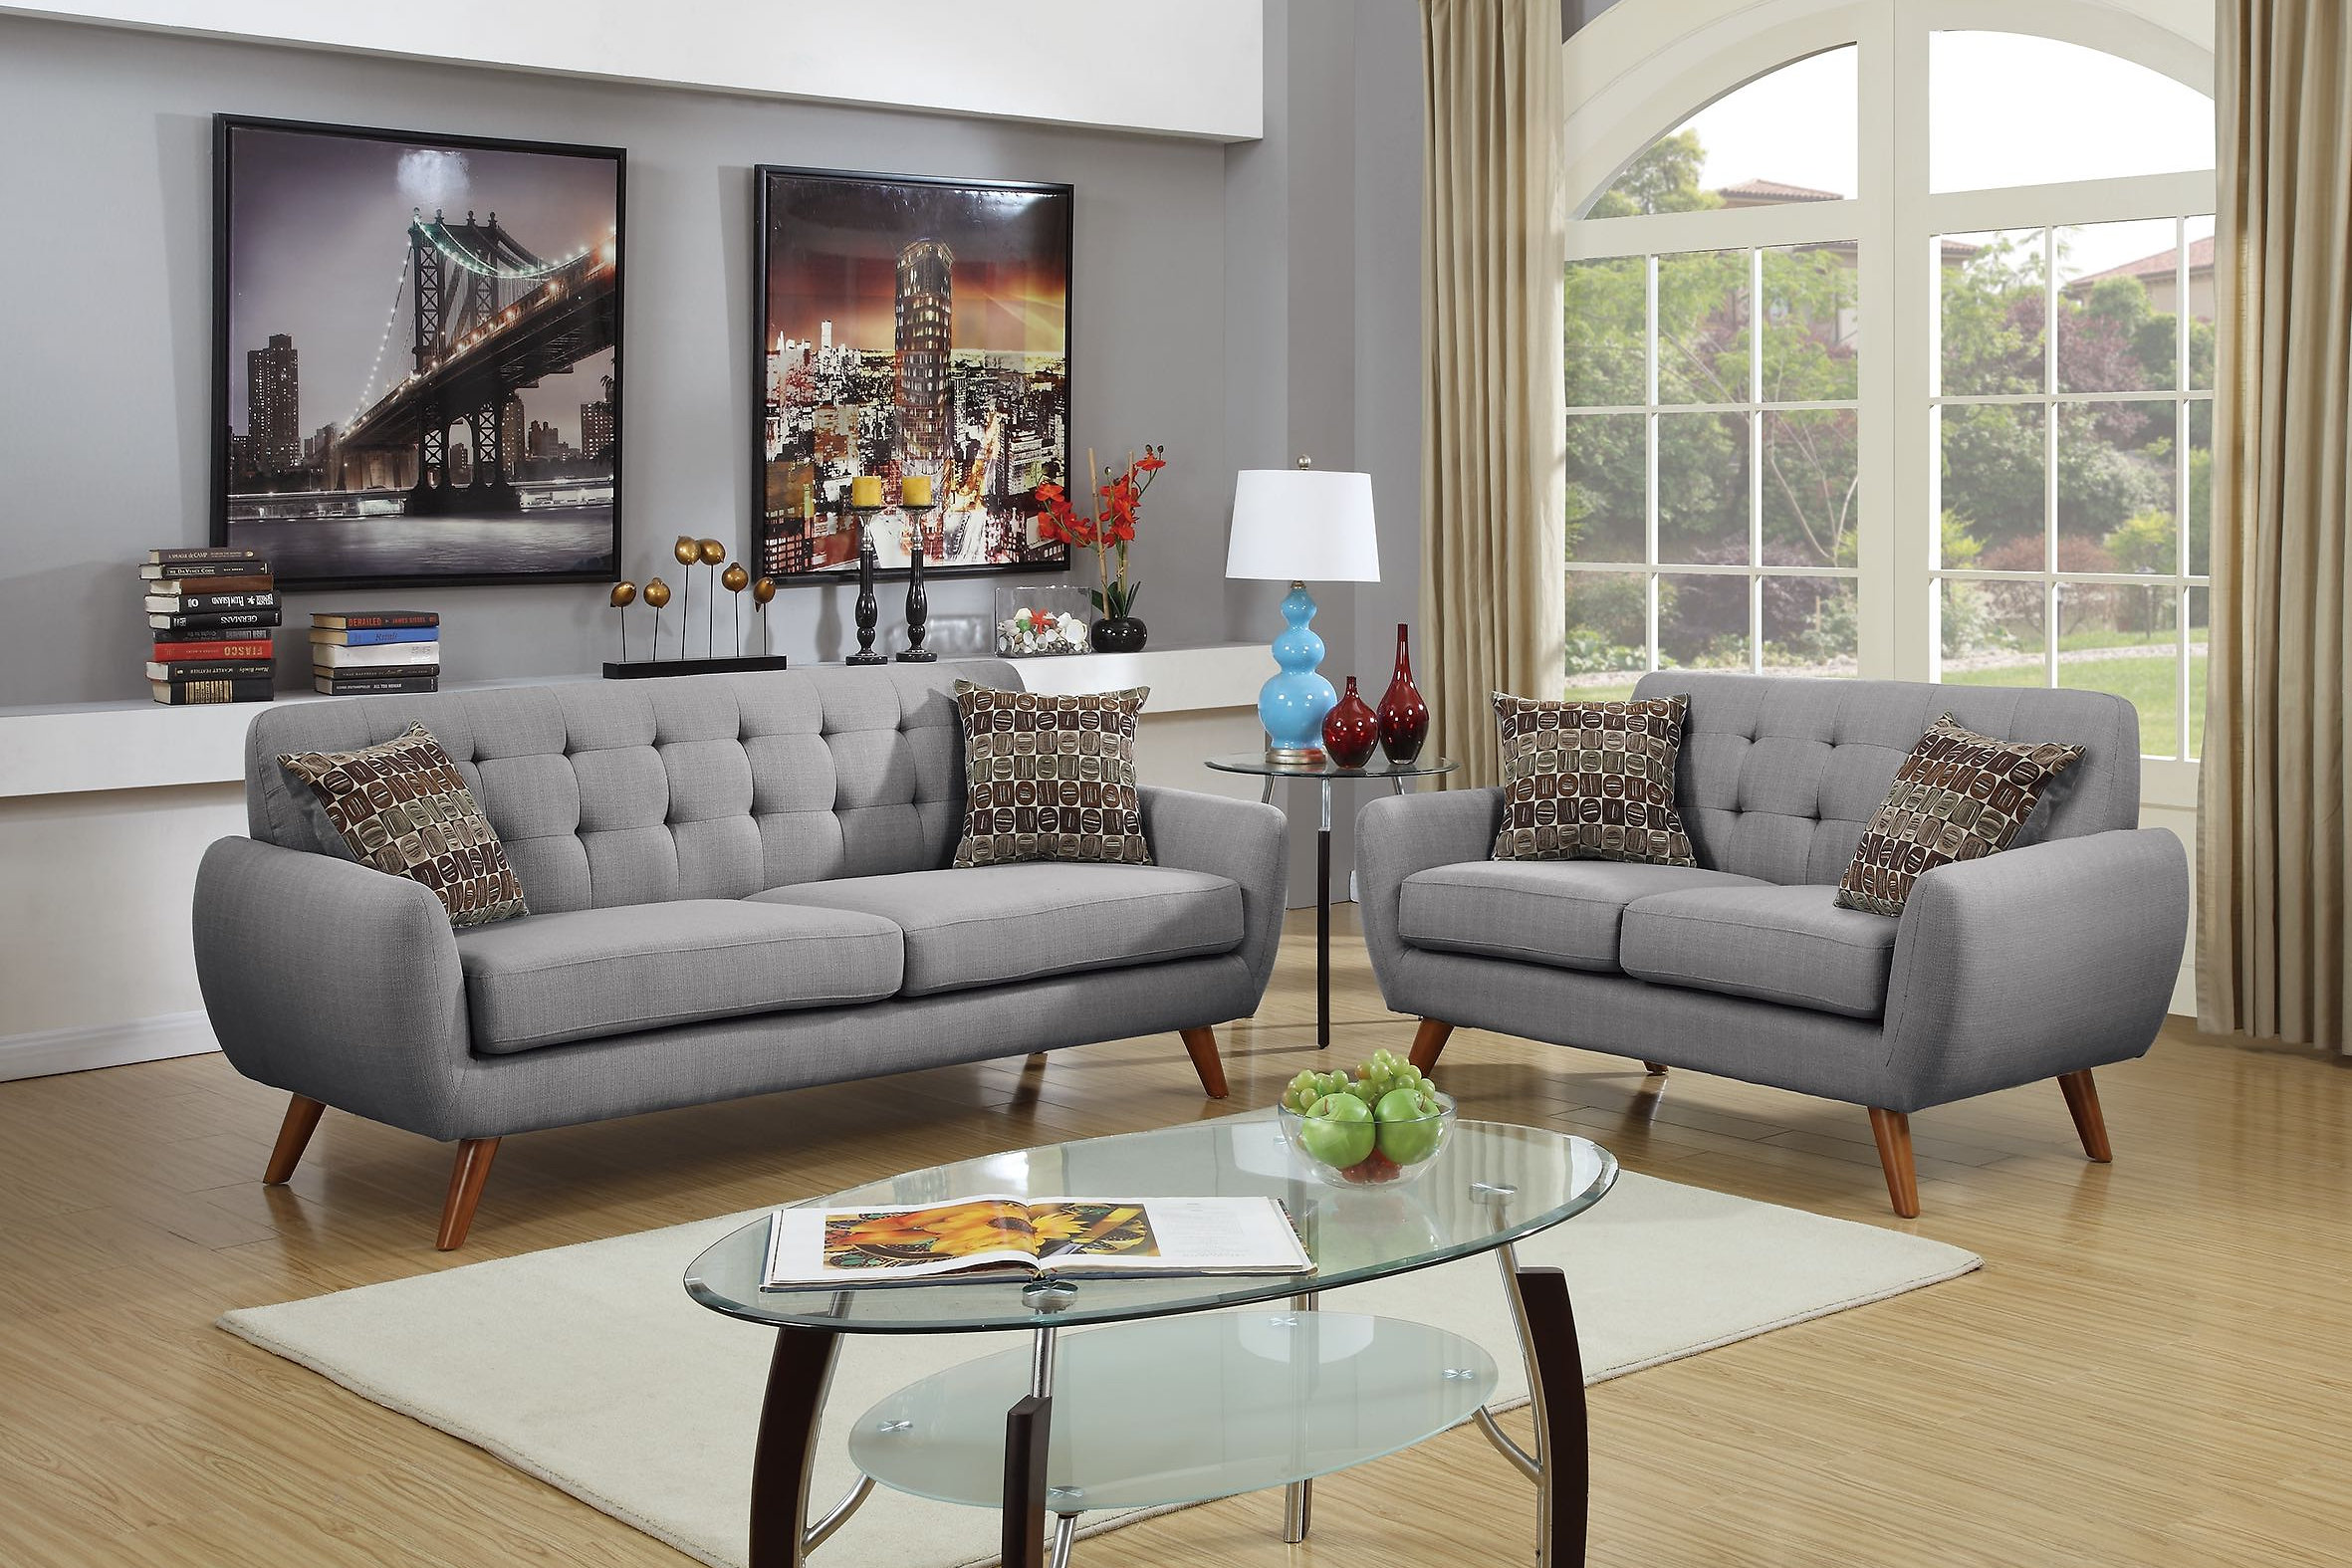 Impress Upon Your Guest With This Magnificently Constructed 2 Piece Sofa Set That Features A Bold Designed Accent Tufting On The Low Back Support And